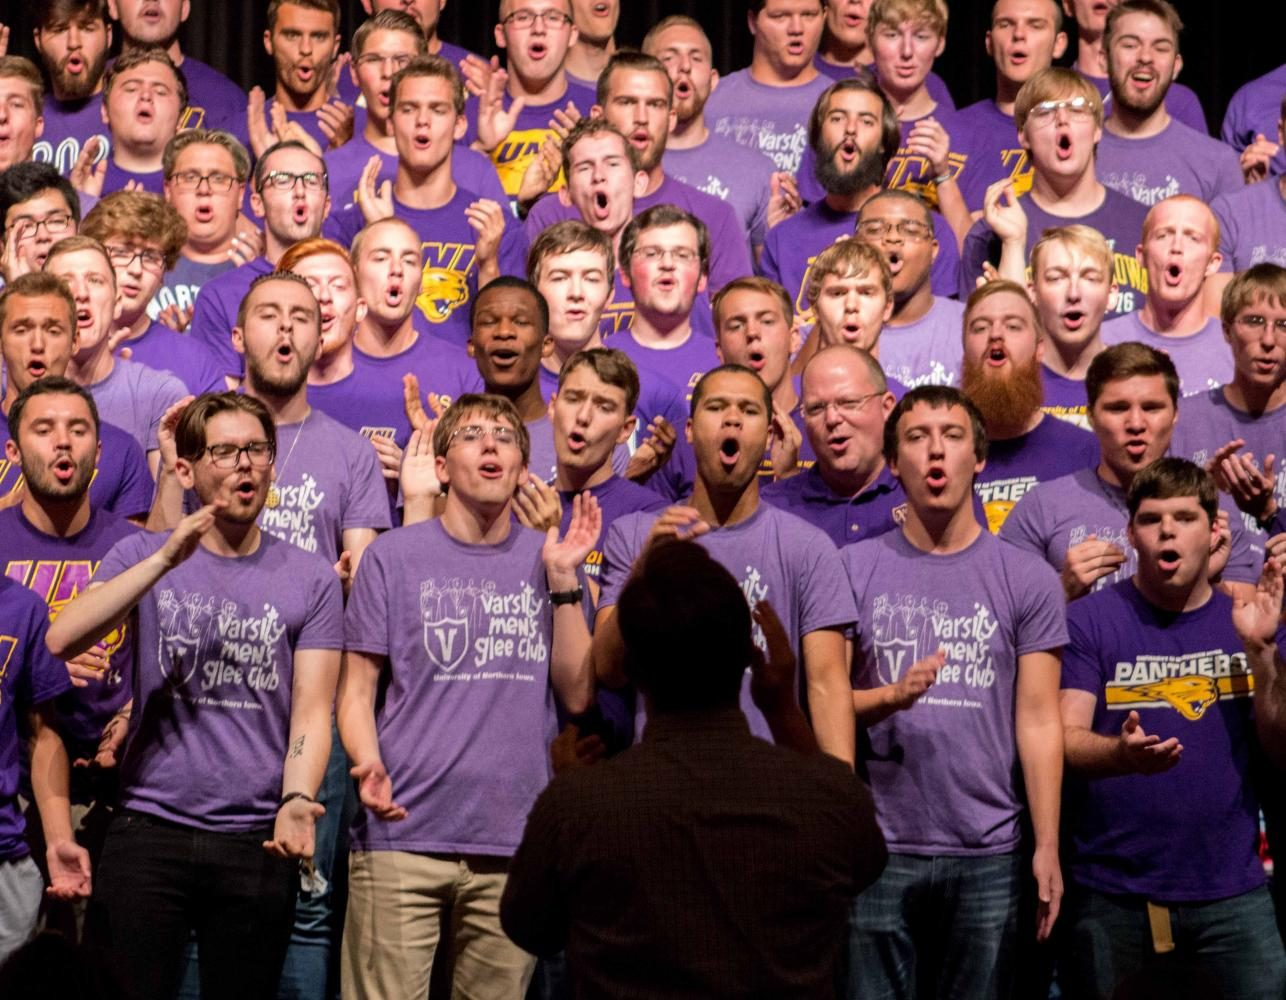 The+Varsity+Men%27s+Glee+Club+does+a+welcome+home+concert+at+the+start+of+every+school+year.